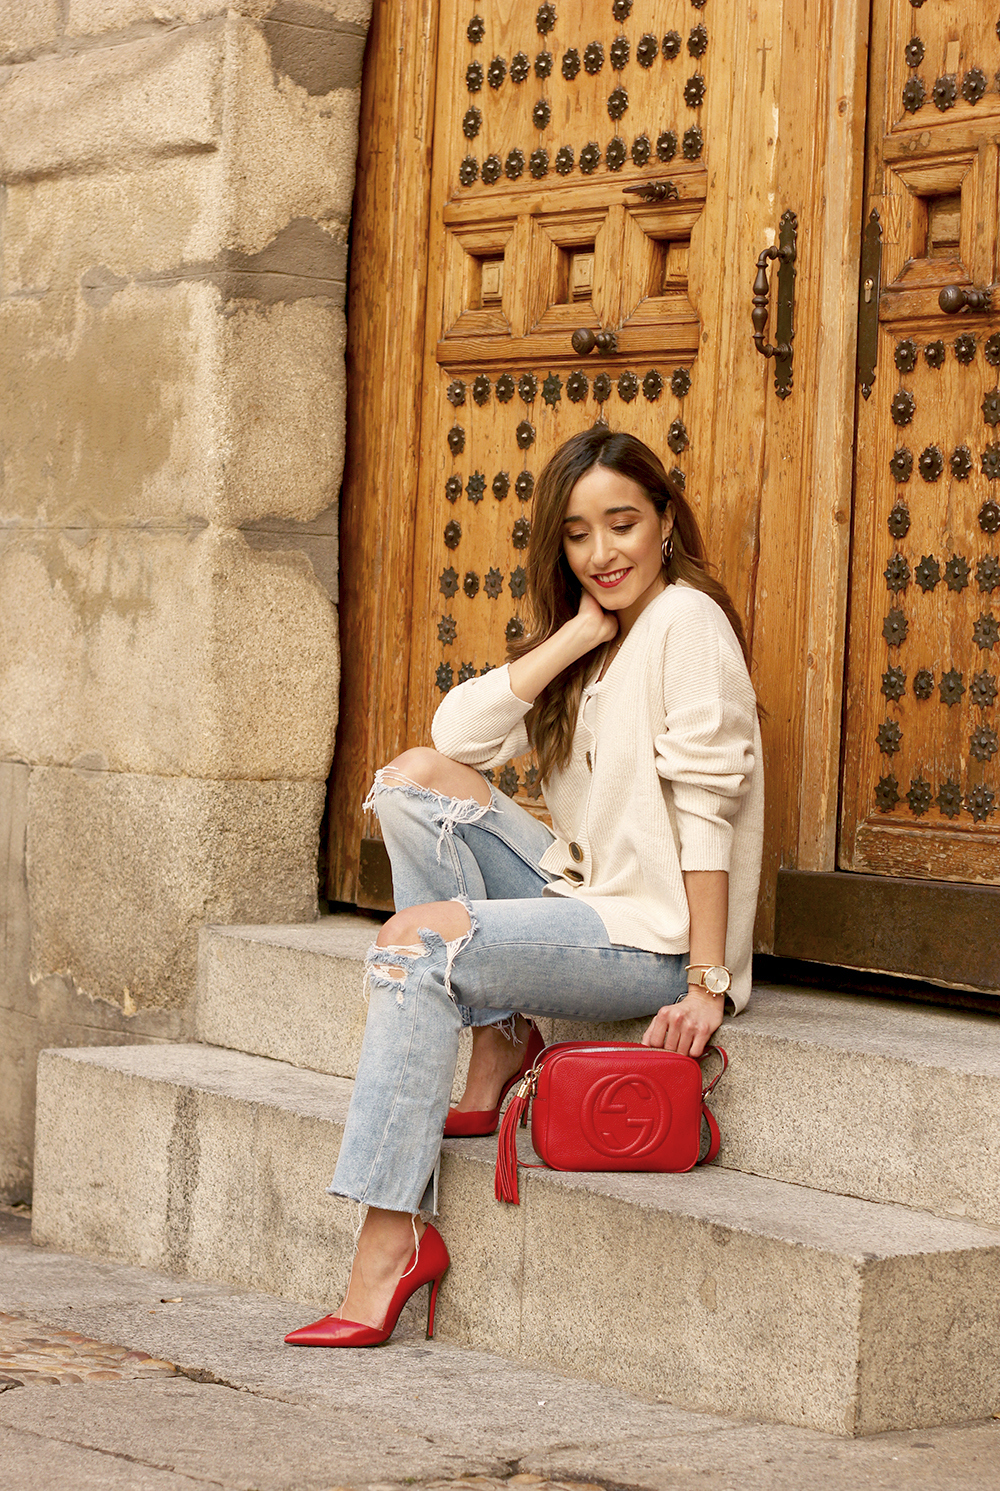 beige cardigan gucci bag red heels ripped jeans street style outfit 201910